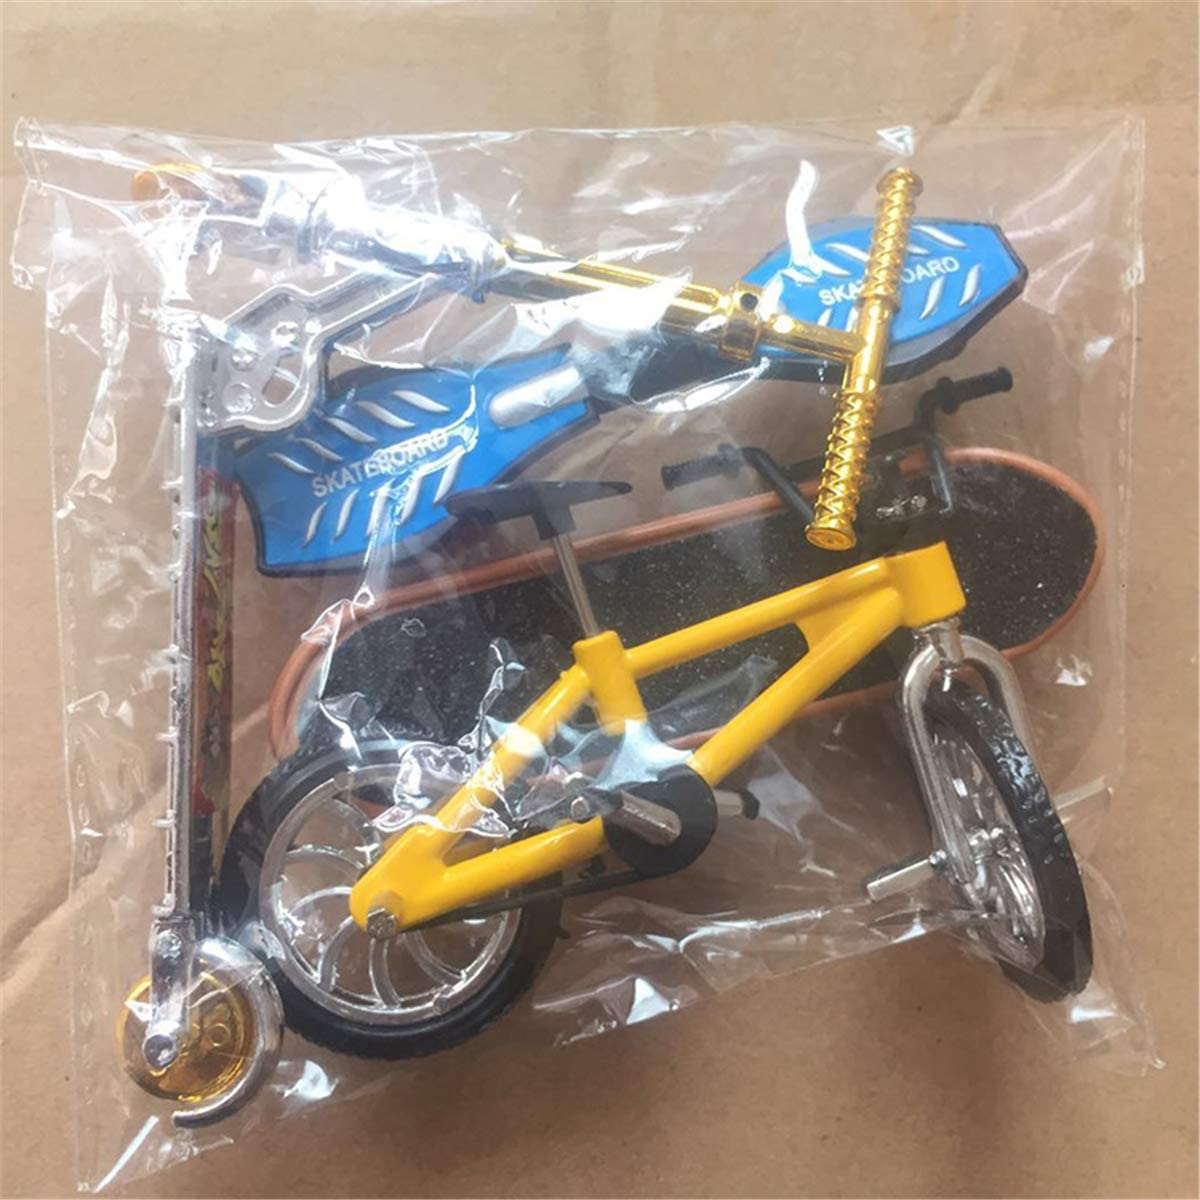 Keepart Mini Scooter Two Wheel Scooter Childrens Educational Toys Finger Scooter Bike